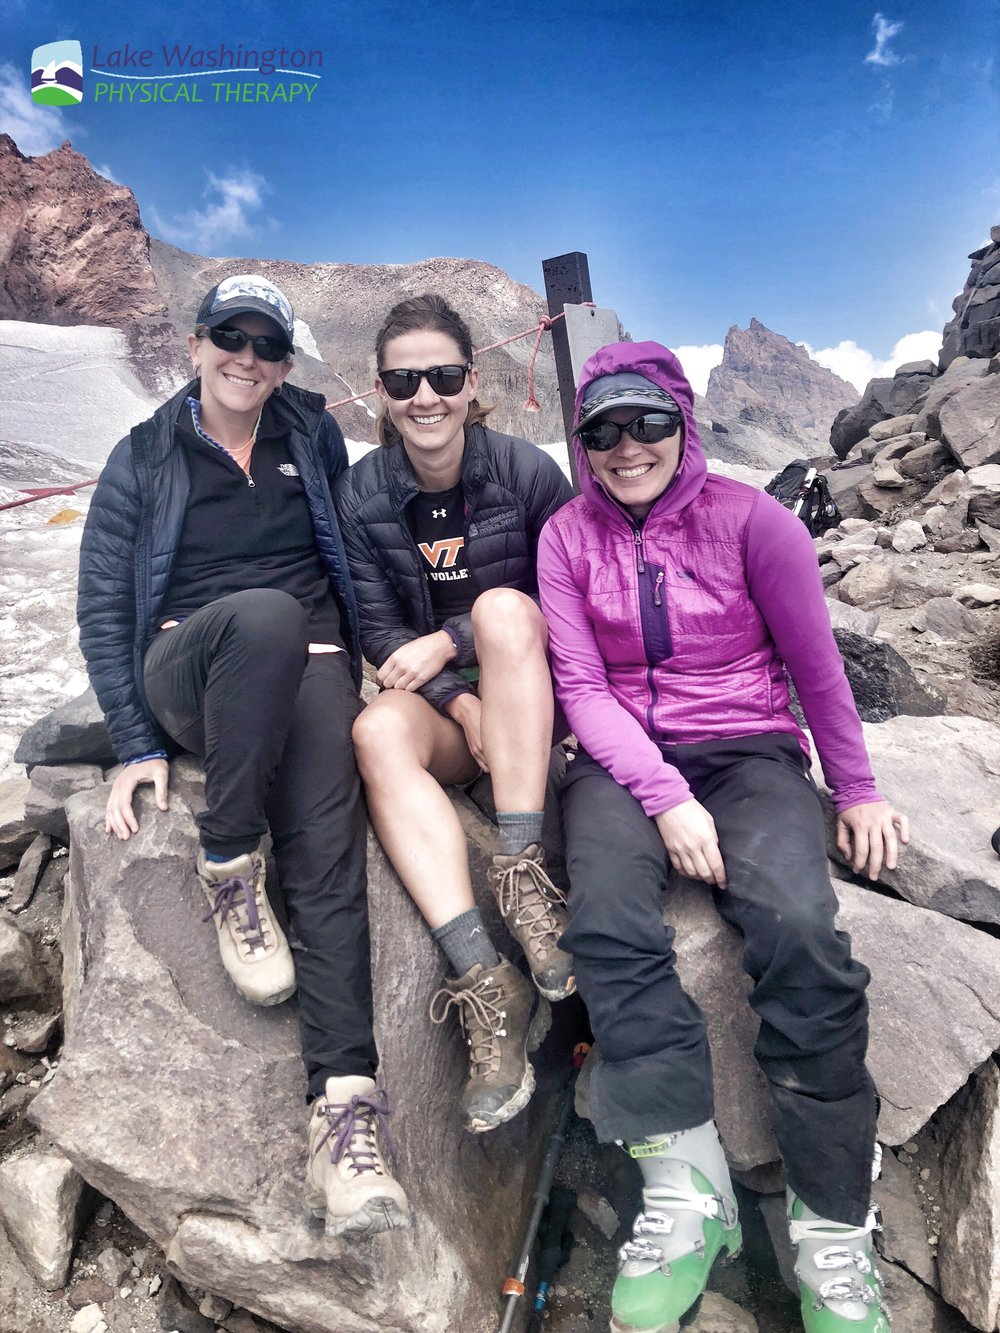 Camp Muir - Mandie led Caitlin, Heidi, and Ryan up to camp muir in August 2018 on a beautiful Seafair weekend. This was a first for some in attendance but Mandie's second home :)